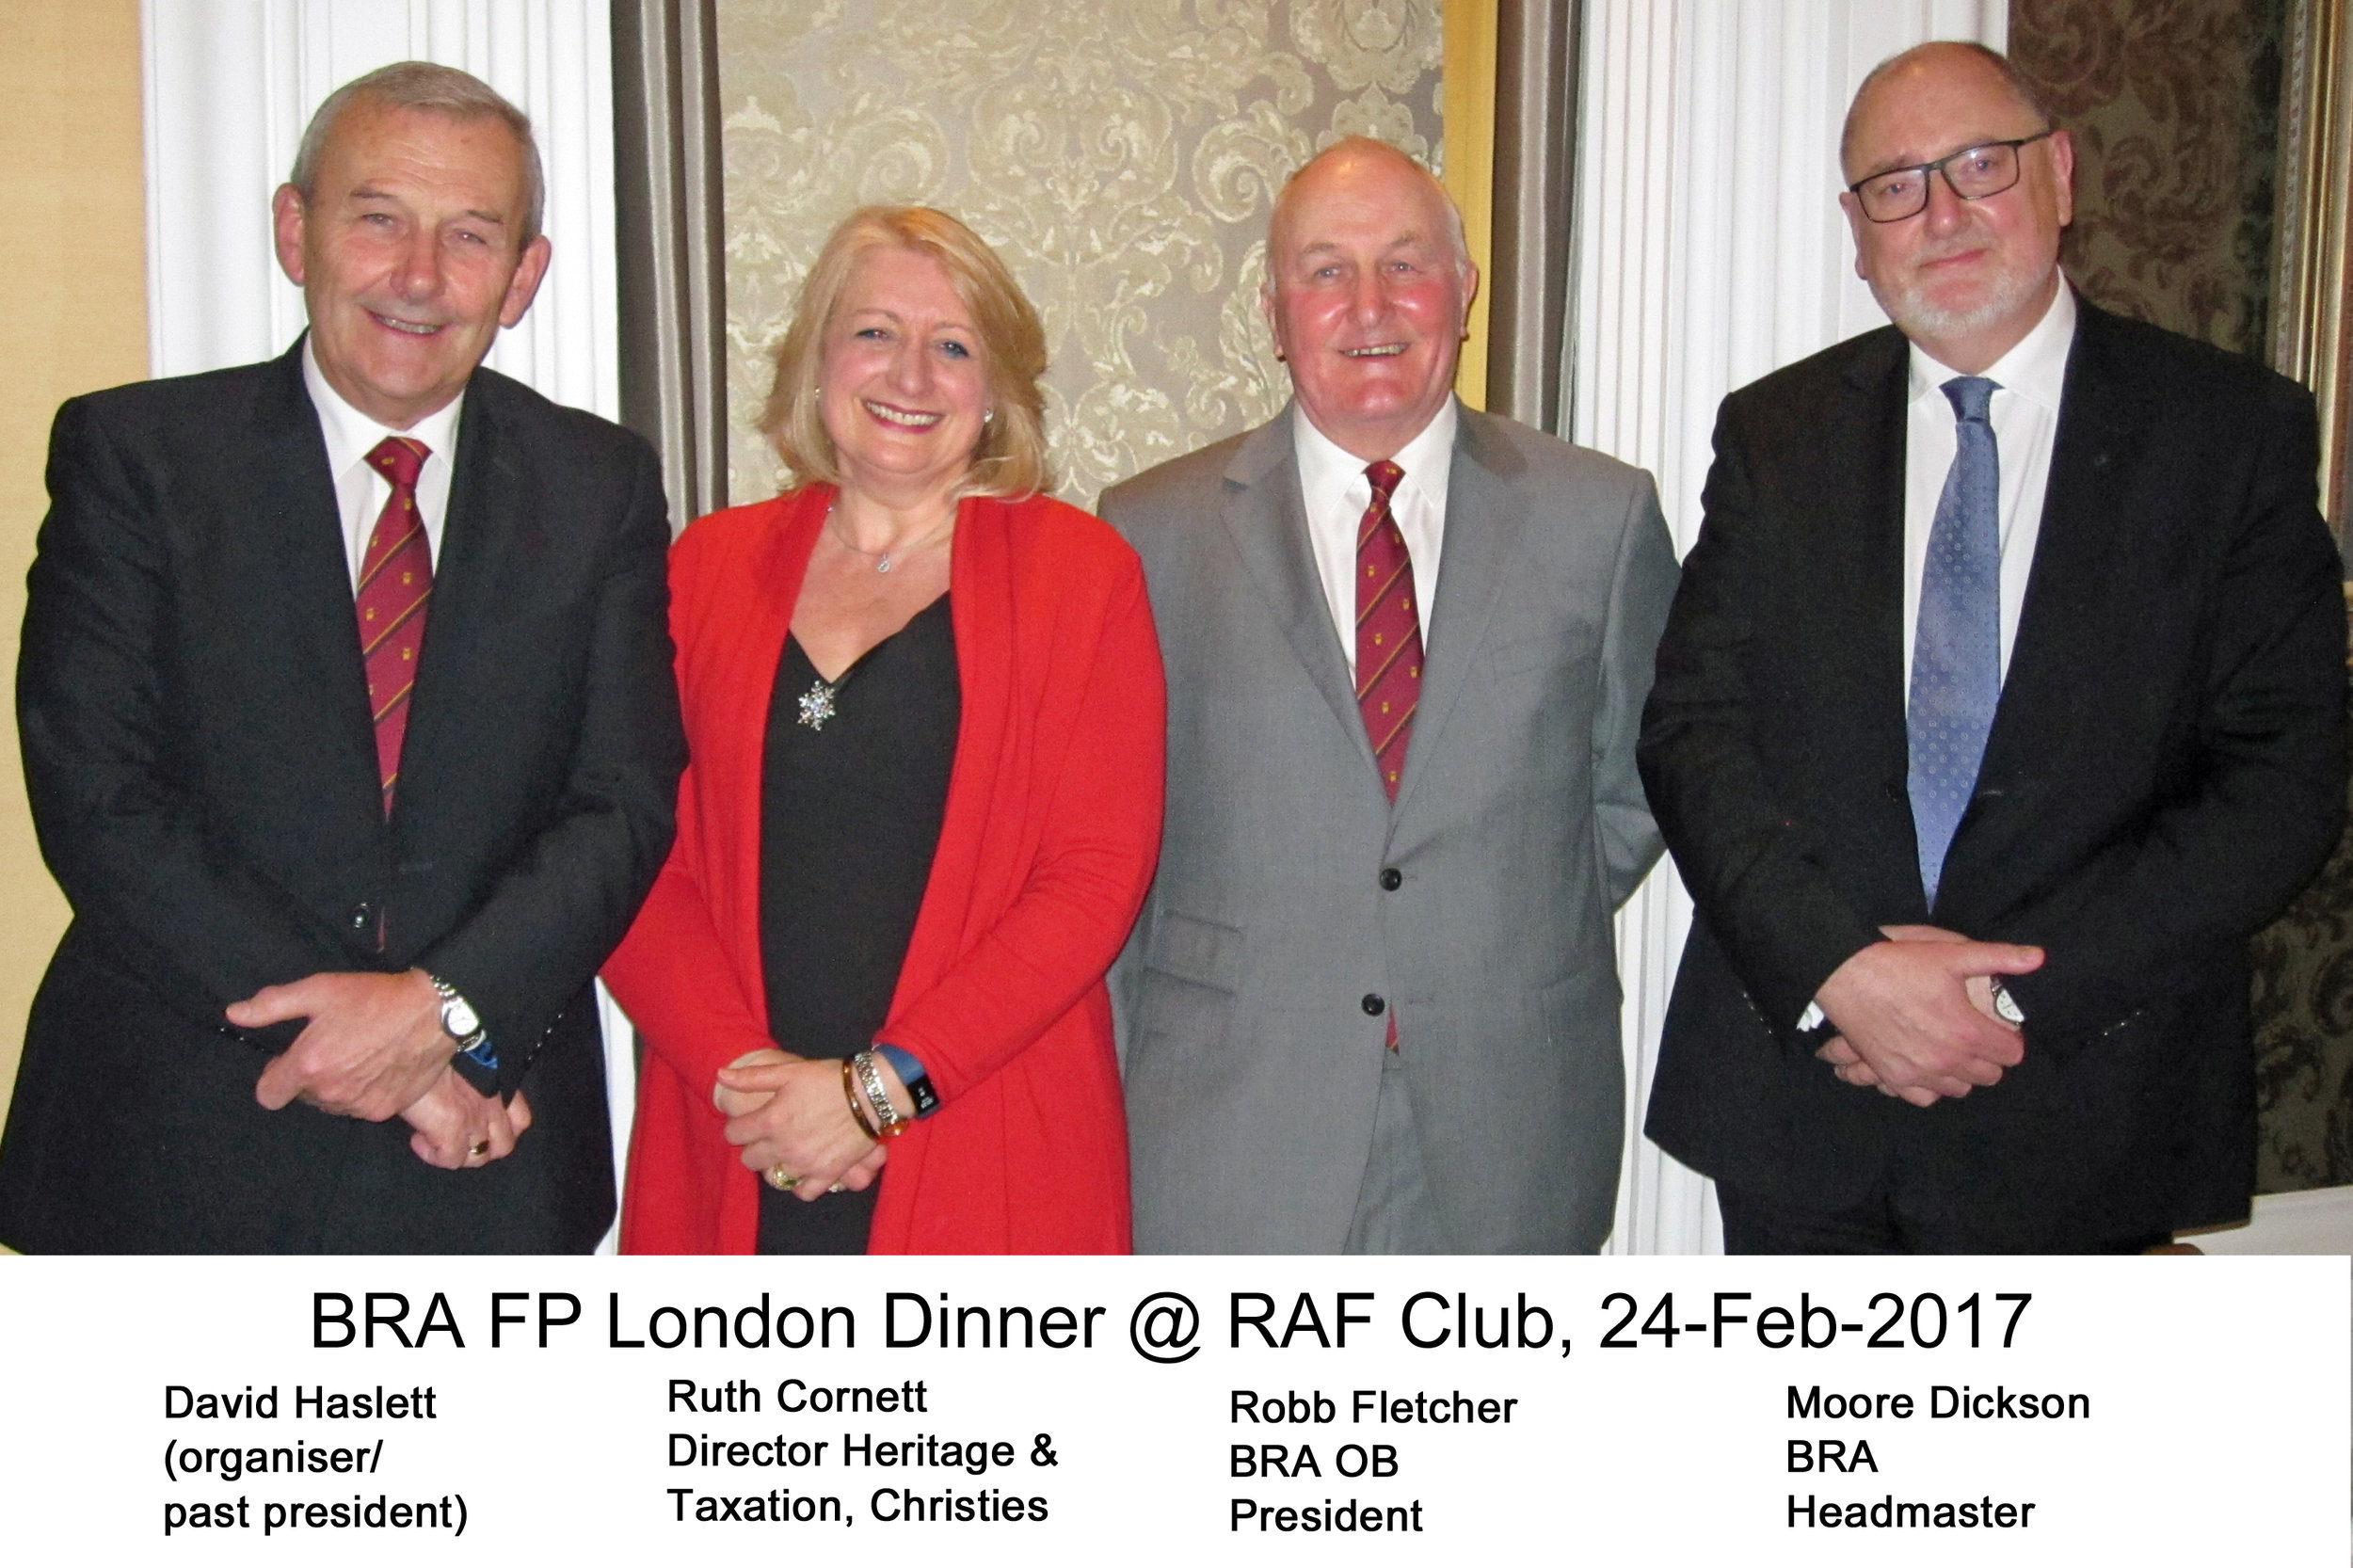 BRA FP Dinner speakers 2017-02-24 with names.jpg